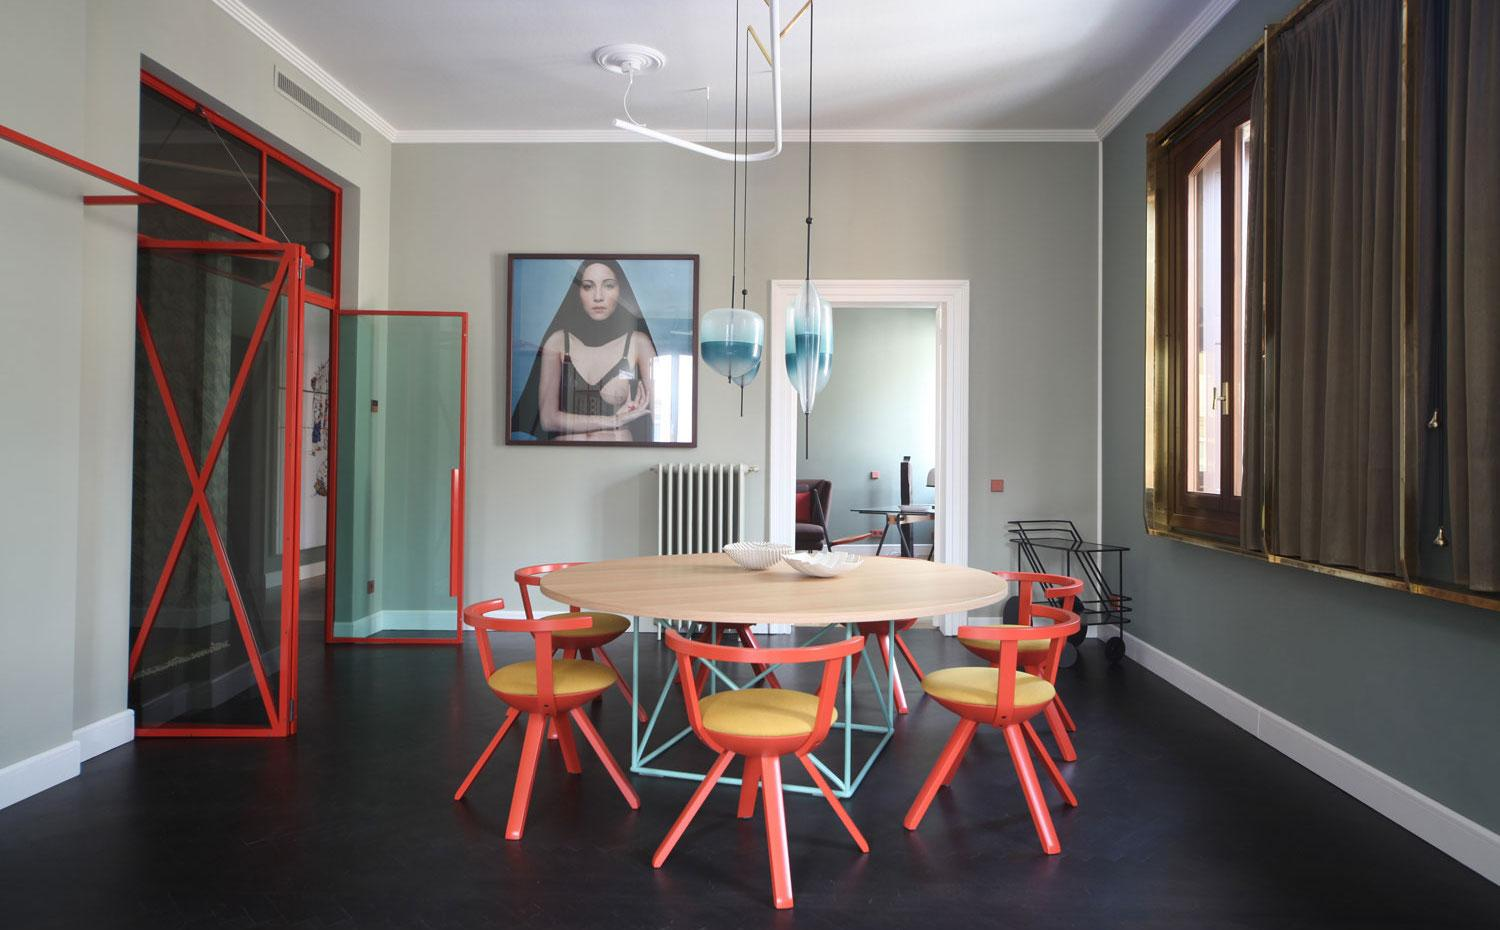 tendencias decoracion 2019 Mercante Testa en Venecia. Living Coral